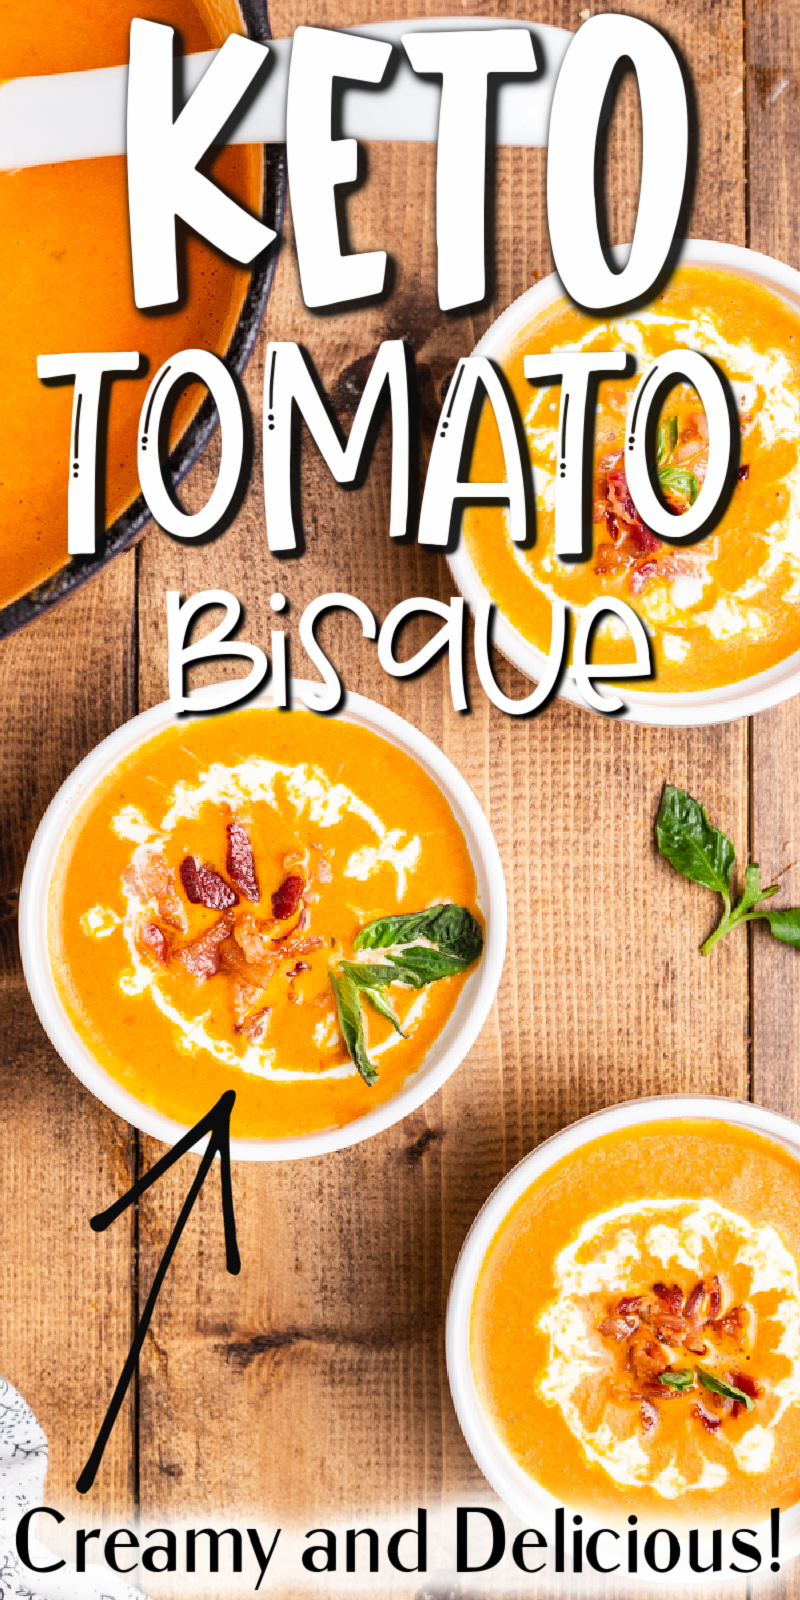 Keto Tomato Bisque with Bacon - This easy to make keto tomato soup is creamy and delicious with bacon and basil. It will quickly become a family favorite! #keto #lowcarb #glutenfree #tomato #bacon #basil #soup #bisque #easy #recipe